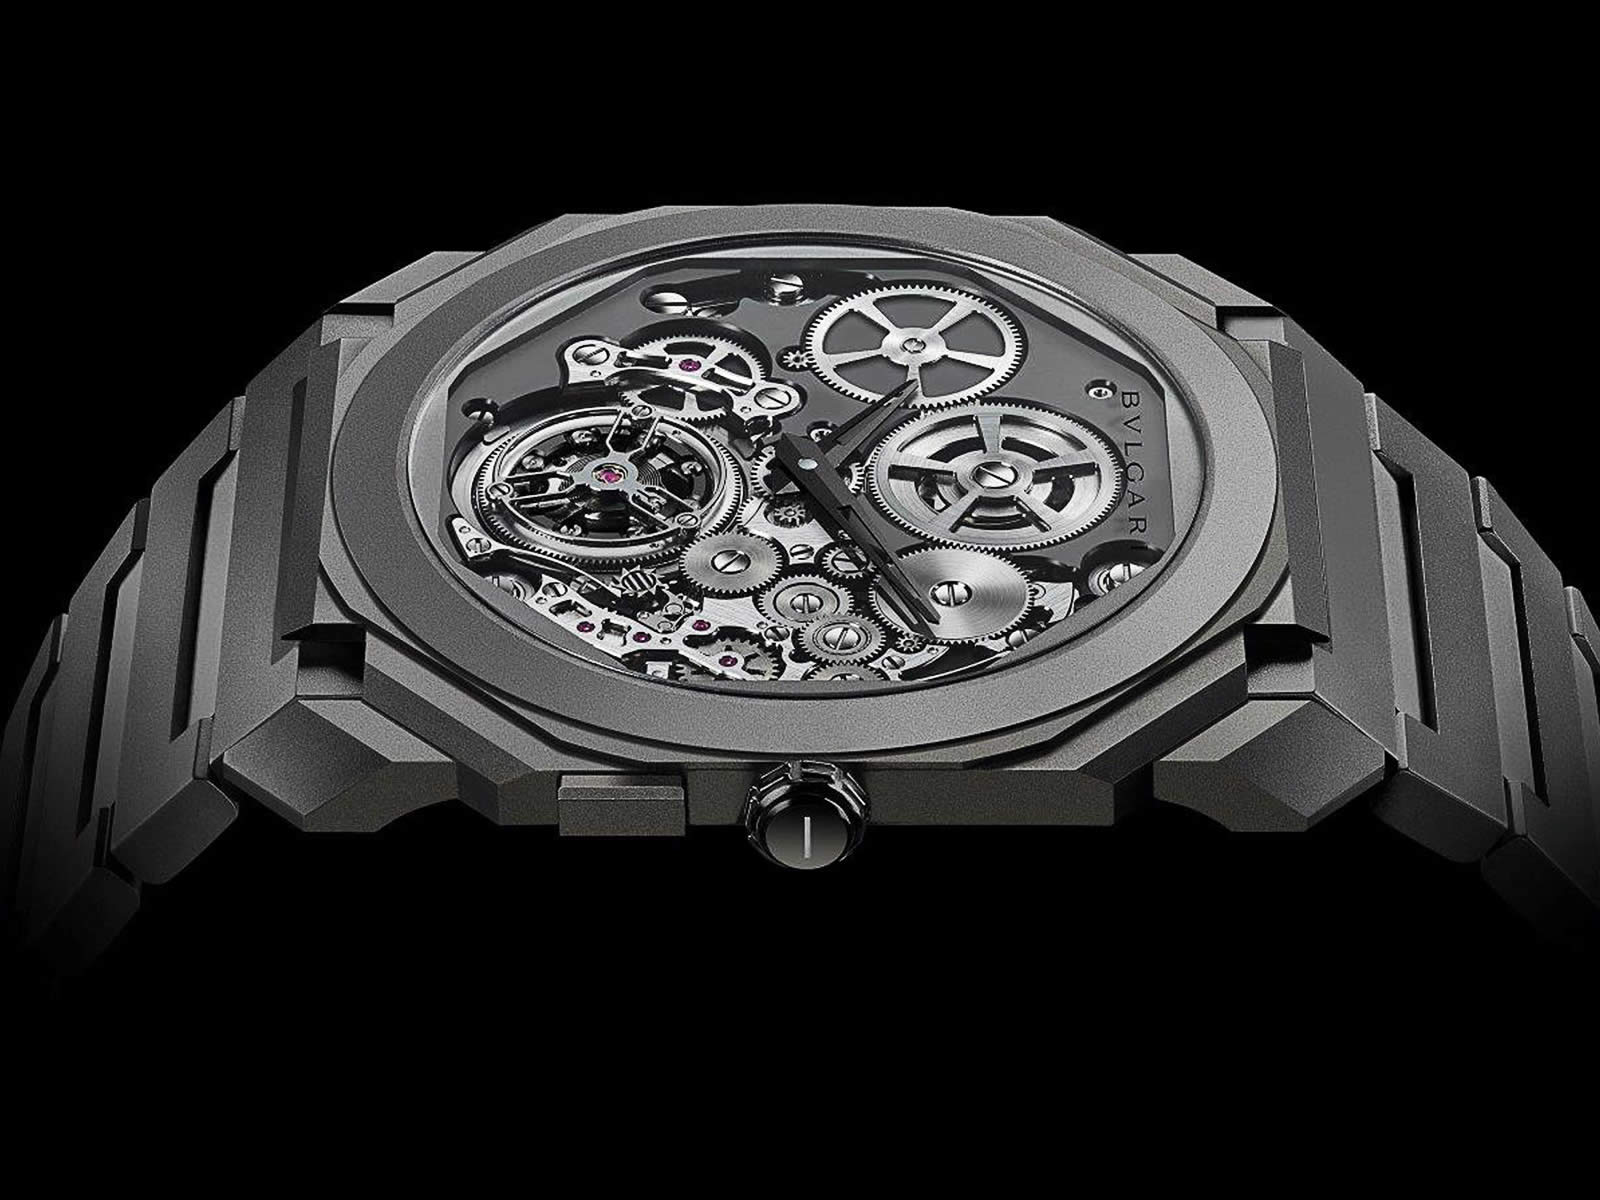 bulgari-octo-finissimo-thinnest-automatic-watch-2018-7-.jpg